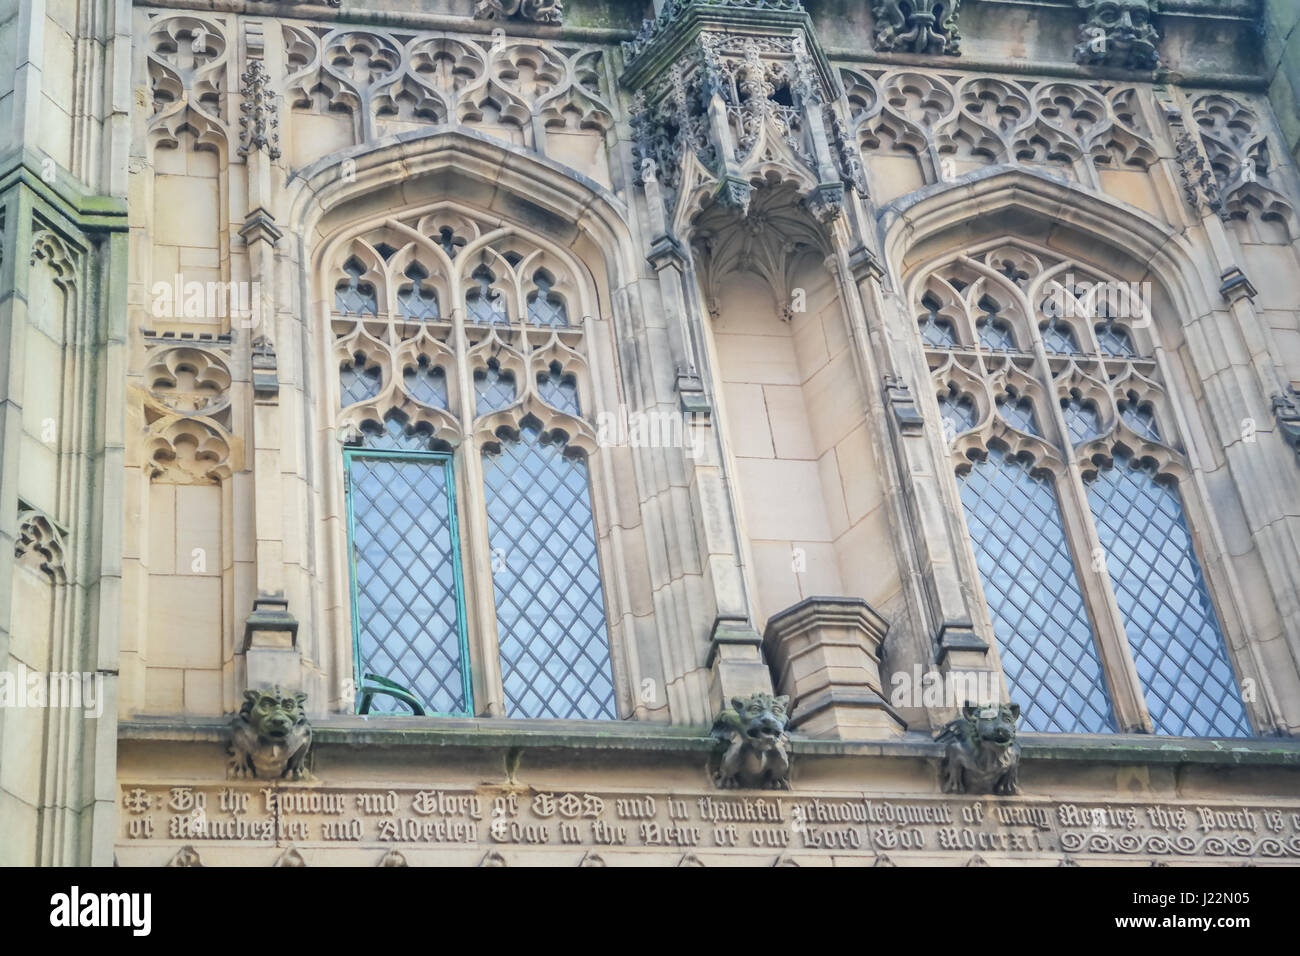 Windows decoration of the famous Manchester Cathedral in England, UK. Gothic windows design - Stock Image